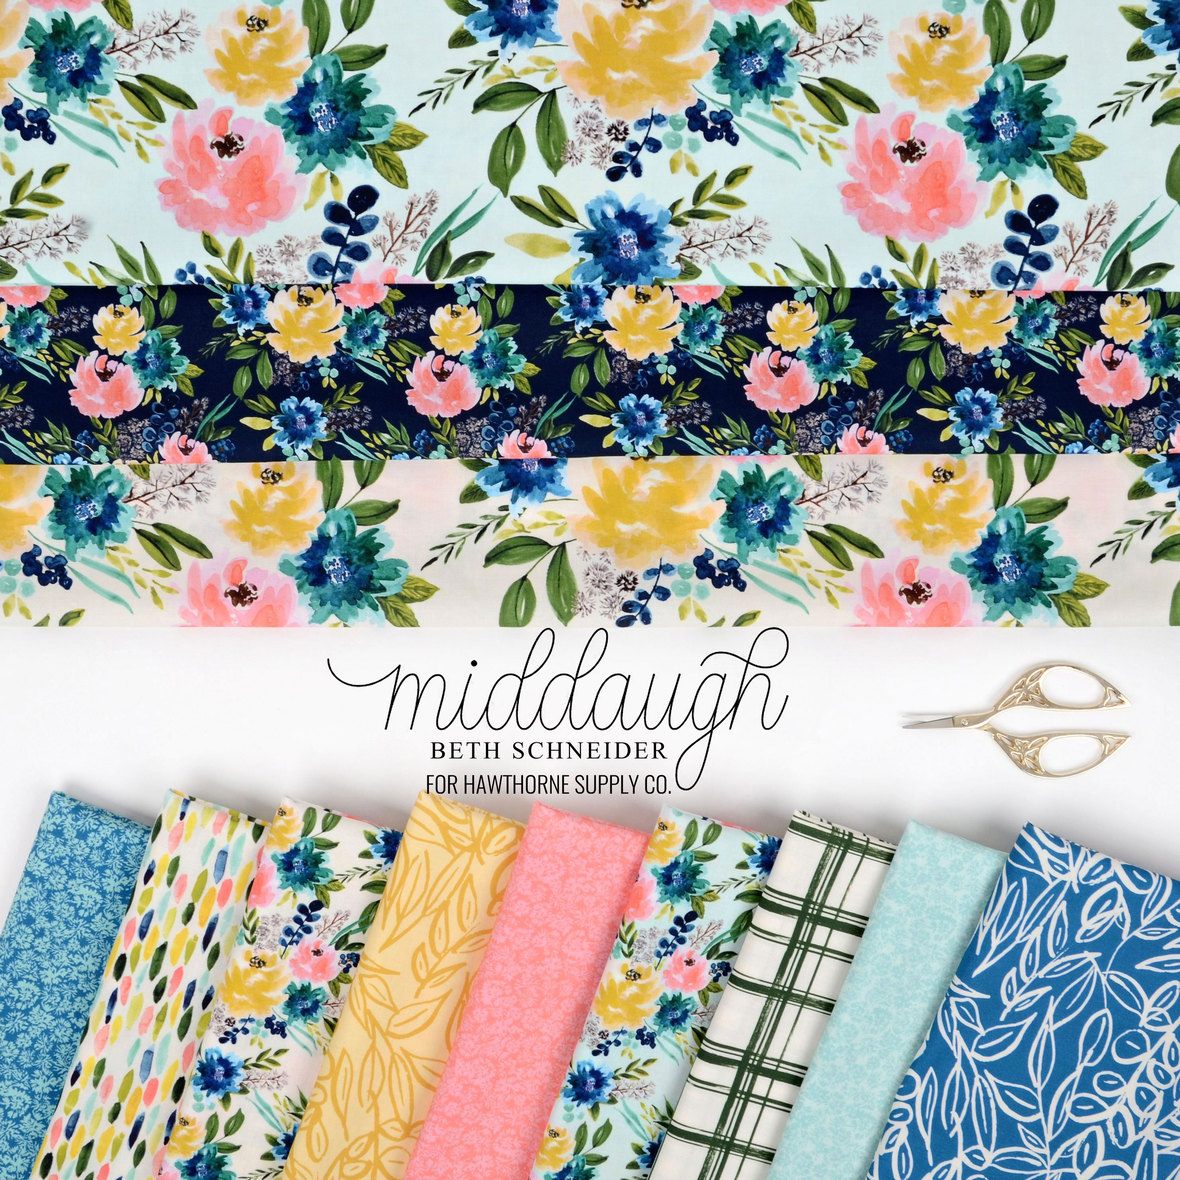 Middaugh-Watercolor-Fabric-Beth-Schneider-for-Hawthorne-Supply-Co